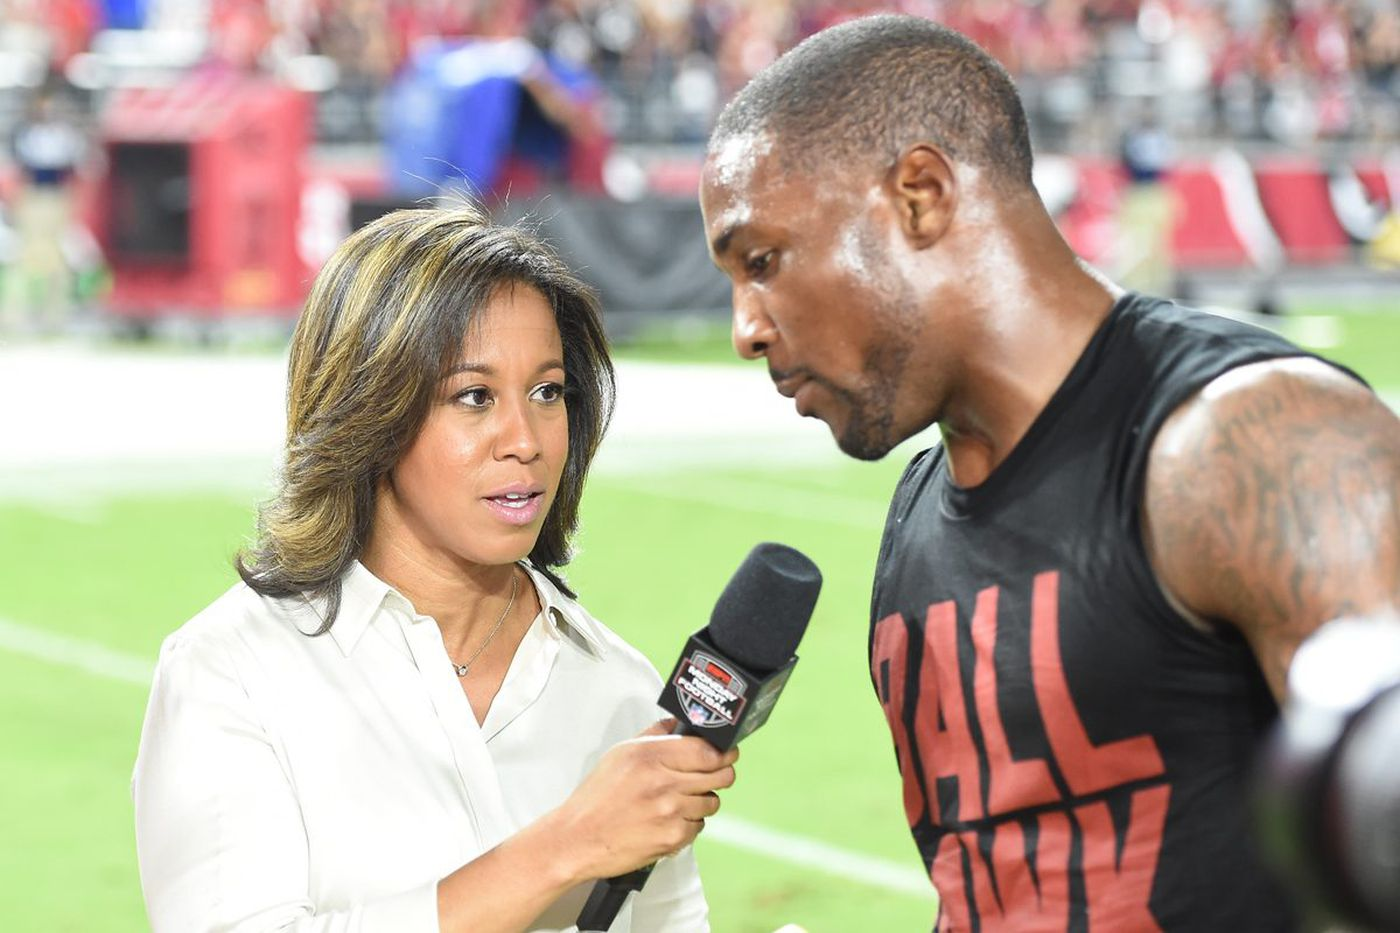 ESPN's Lisa Salters on NFL protests, avoiding Twitter and growing up an Eagles fan